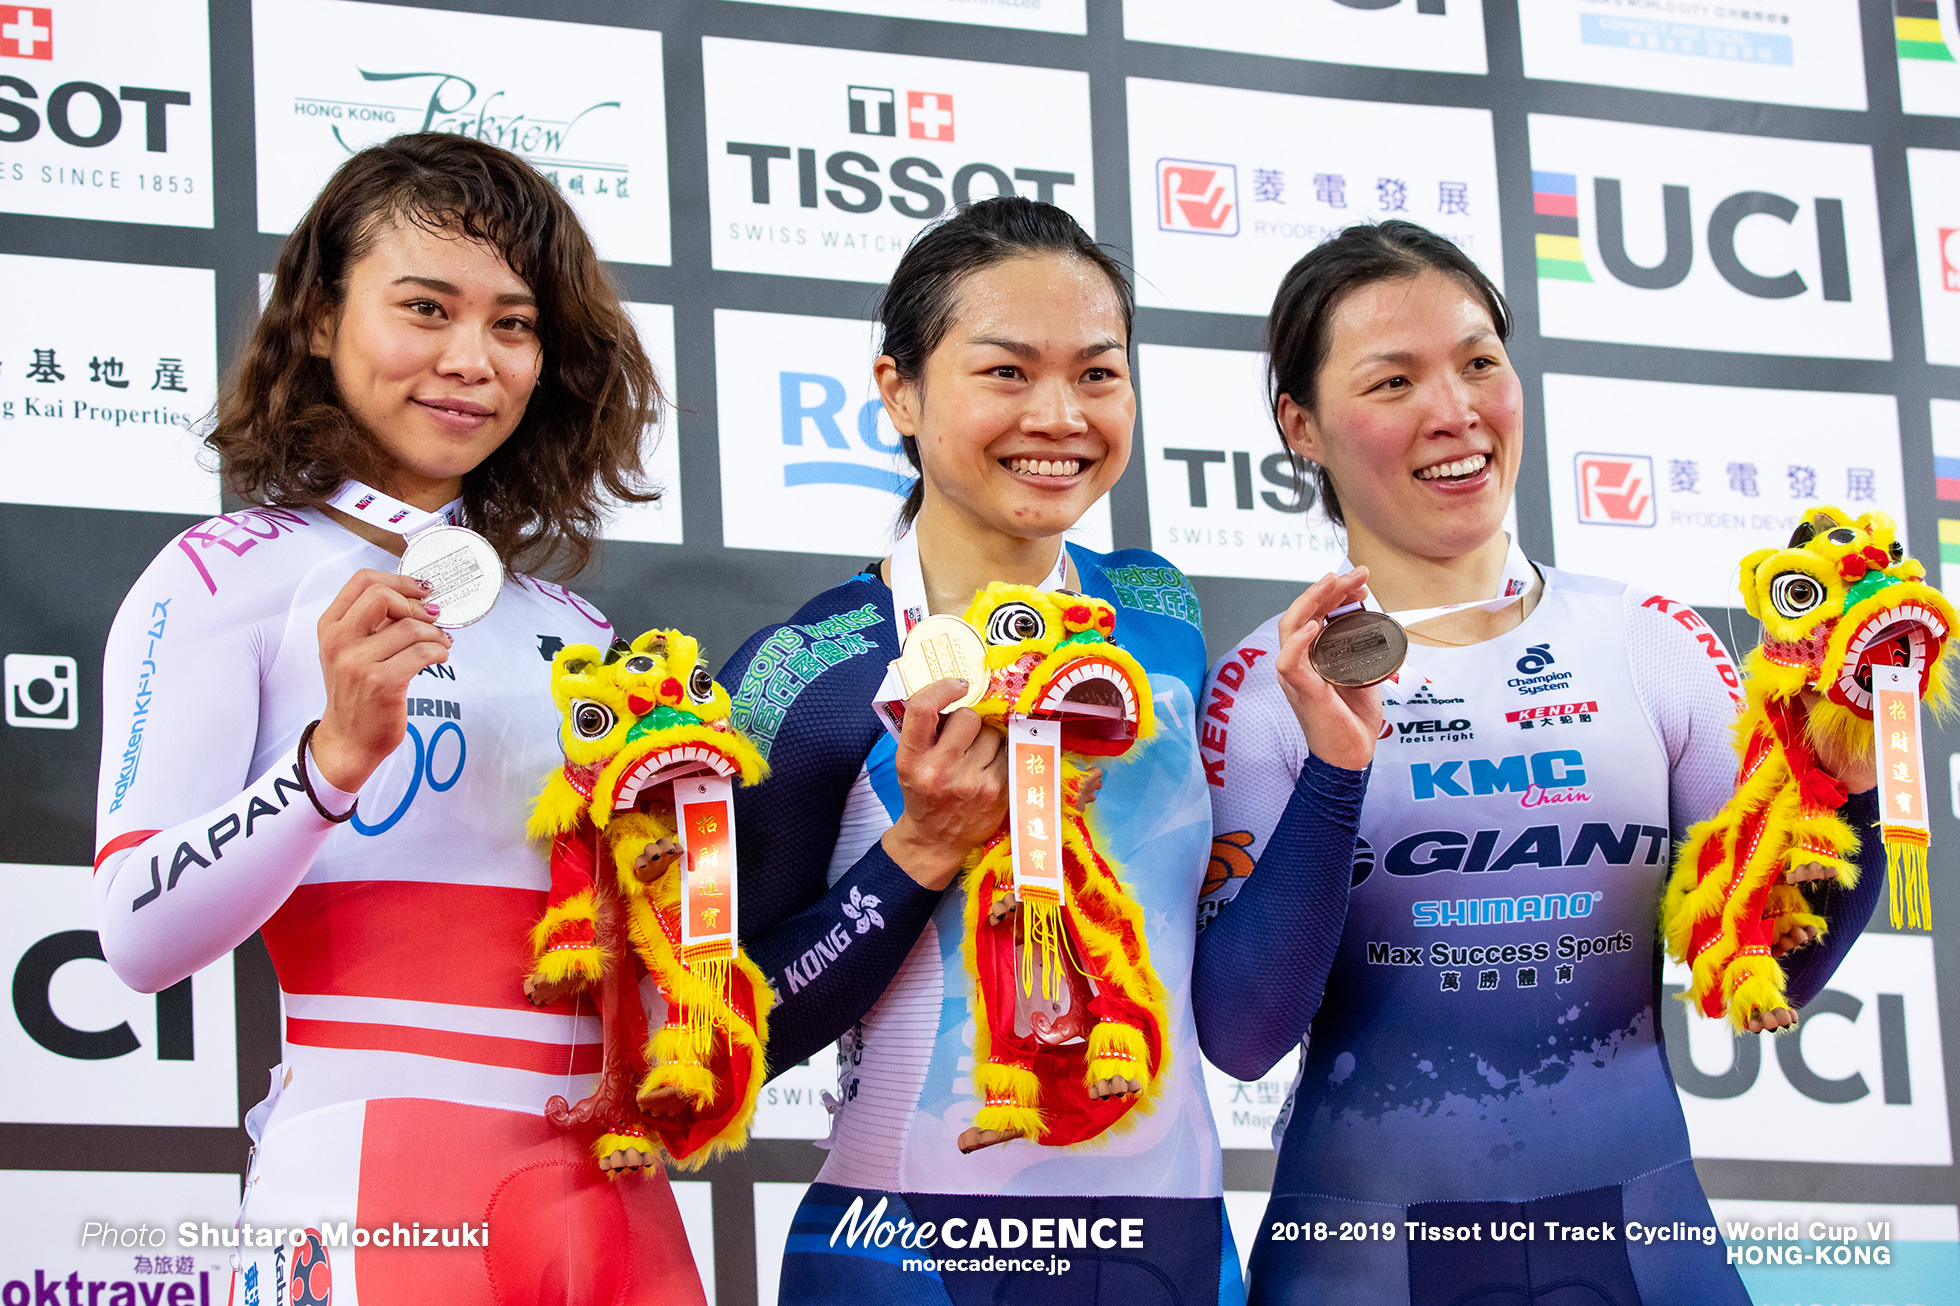 太田りゆ / Women's Keirin / Track Cycling World Cup VI / Hong-Kong